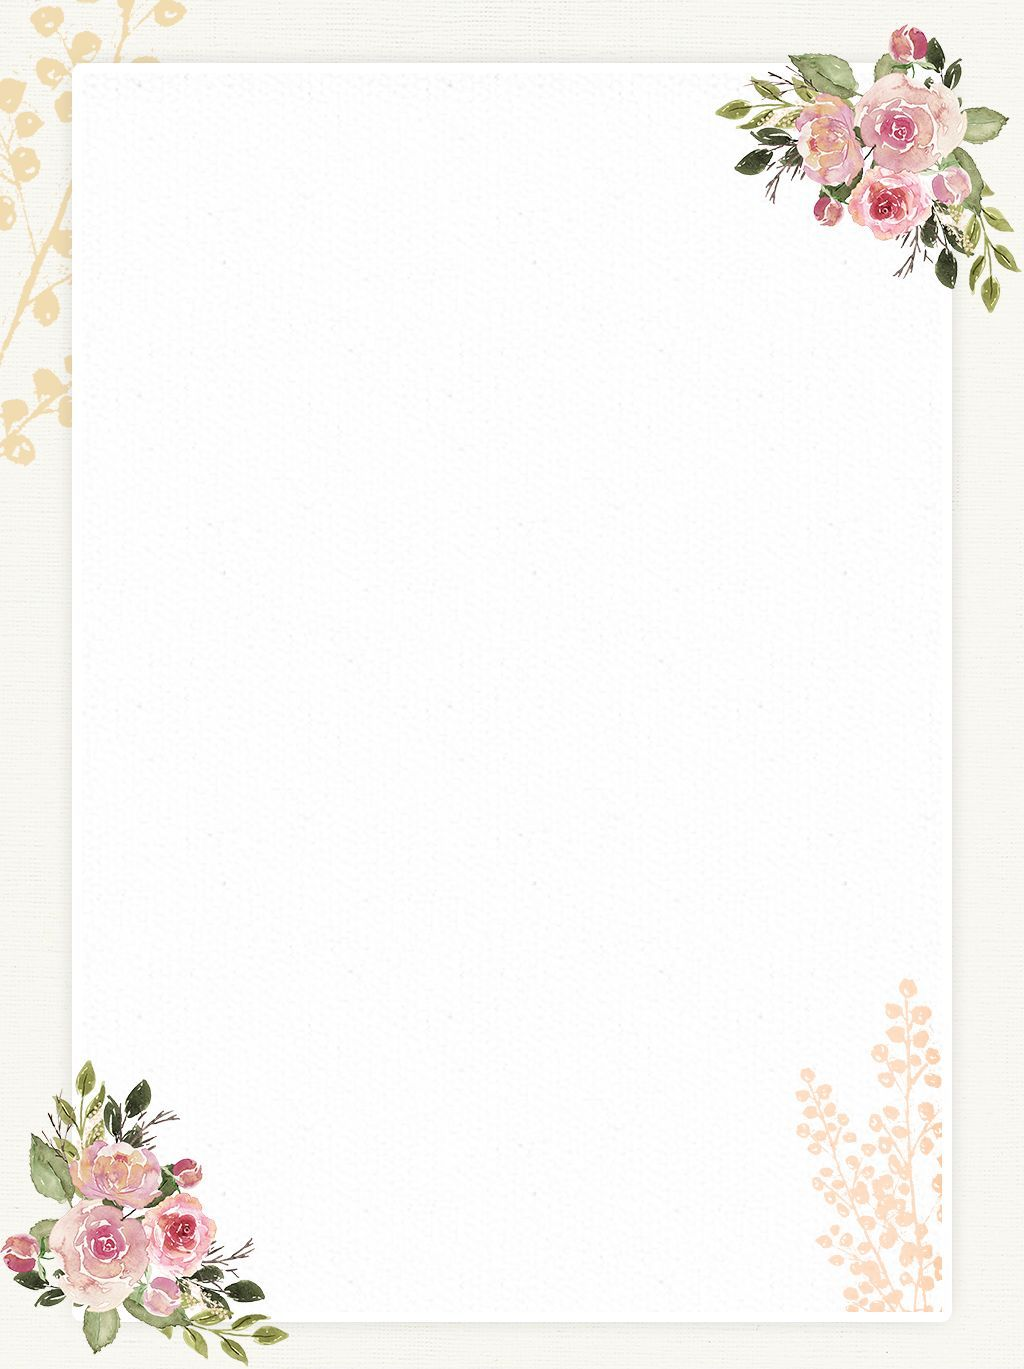 Hand Drawn Vintage Flowers Romantic Paper Background Source File